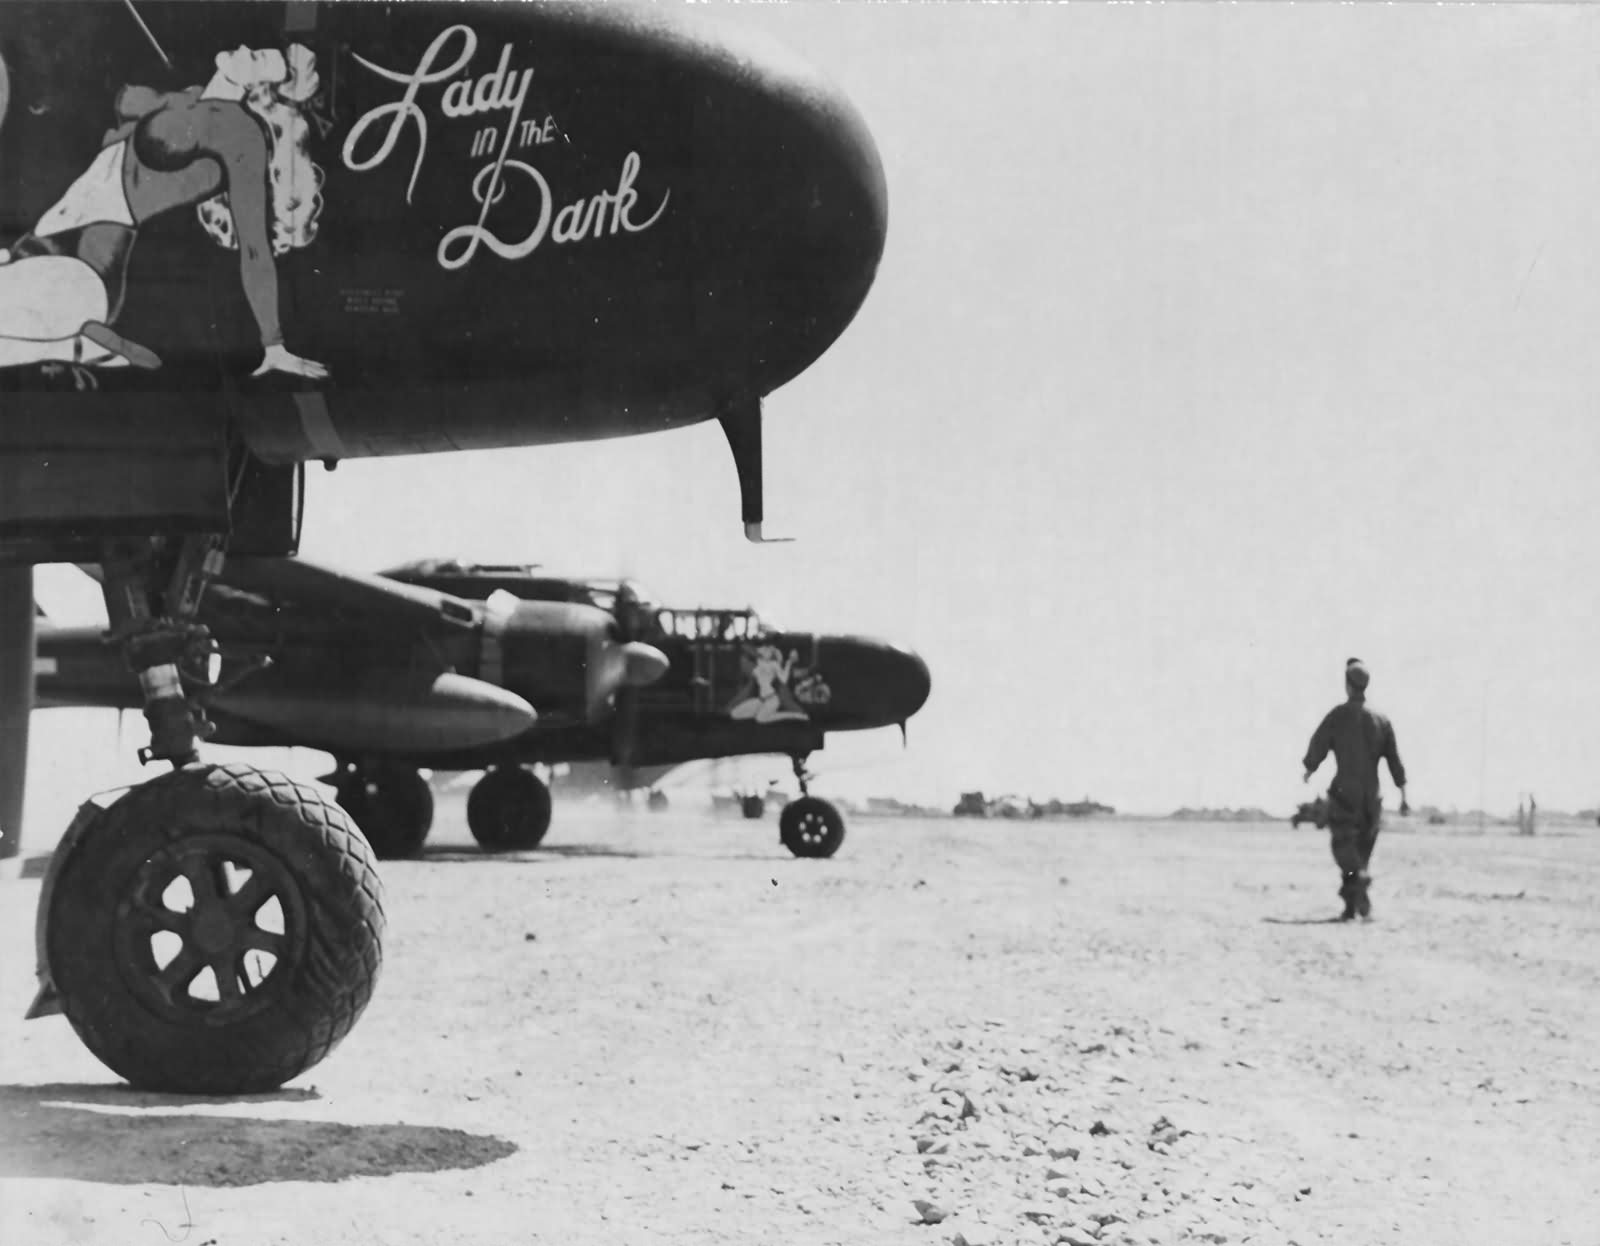 P-61B 42-39408 Lady In The Dark of the 548th Night Fighter Squadron and 42-5609 Bat Outa Hell